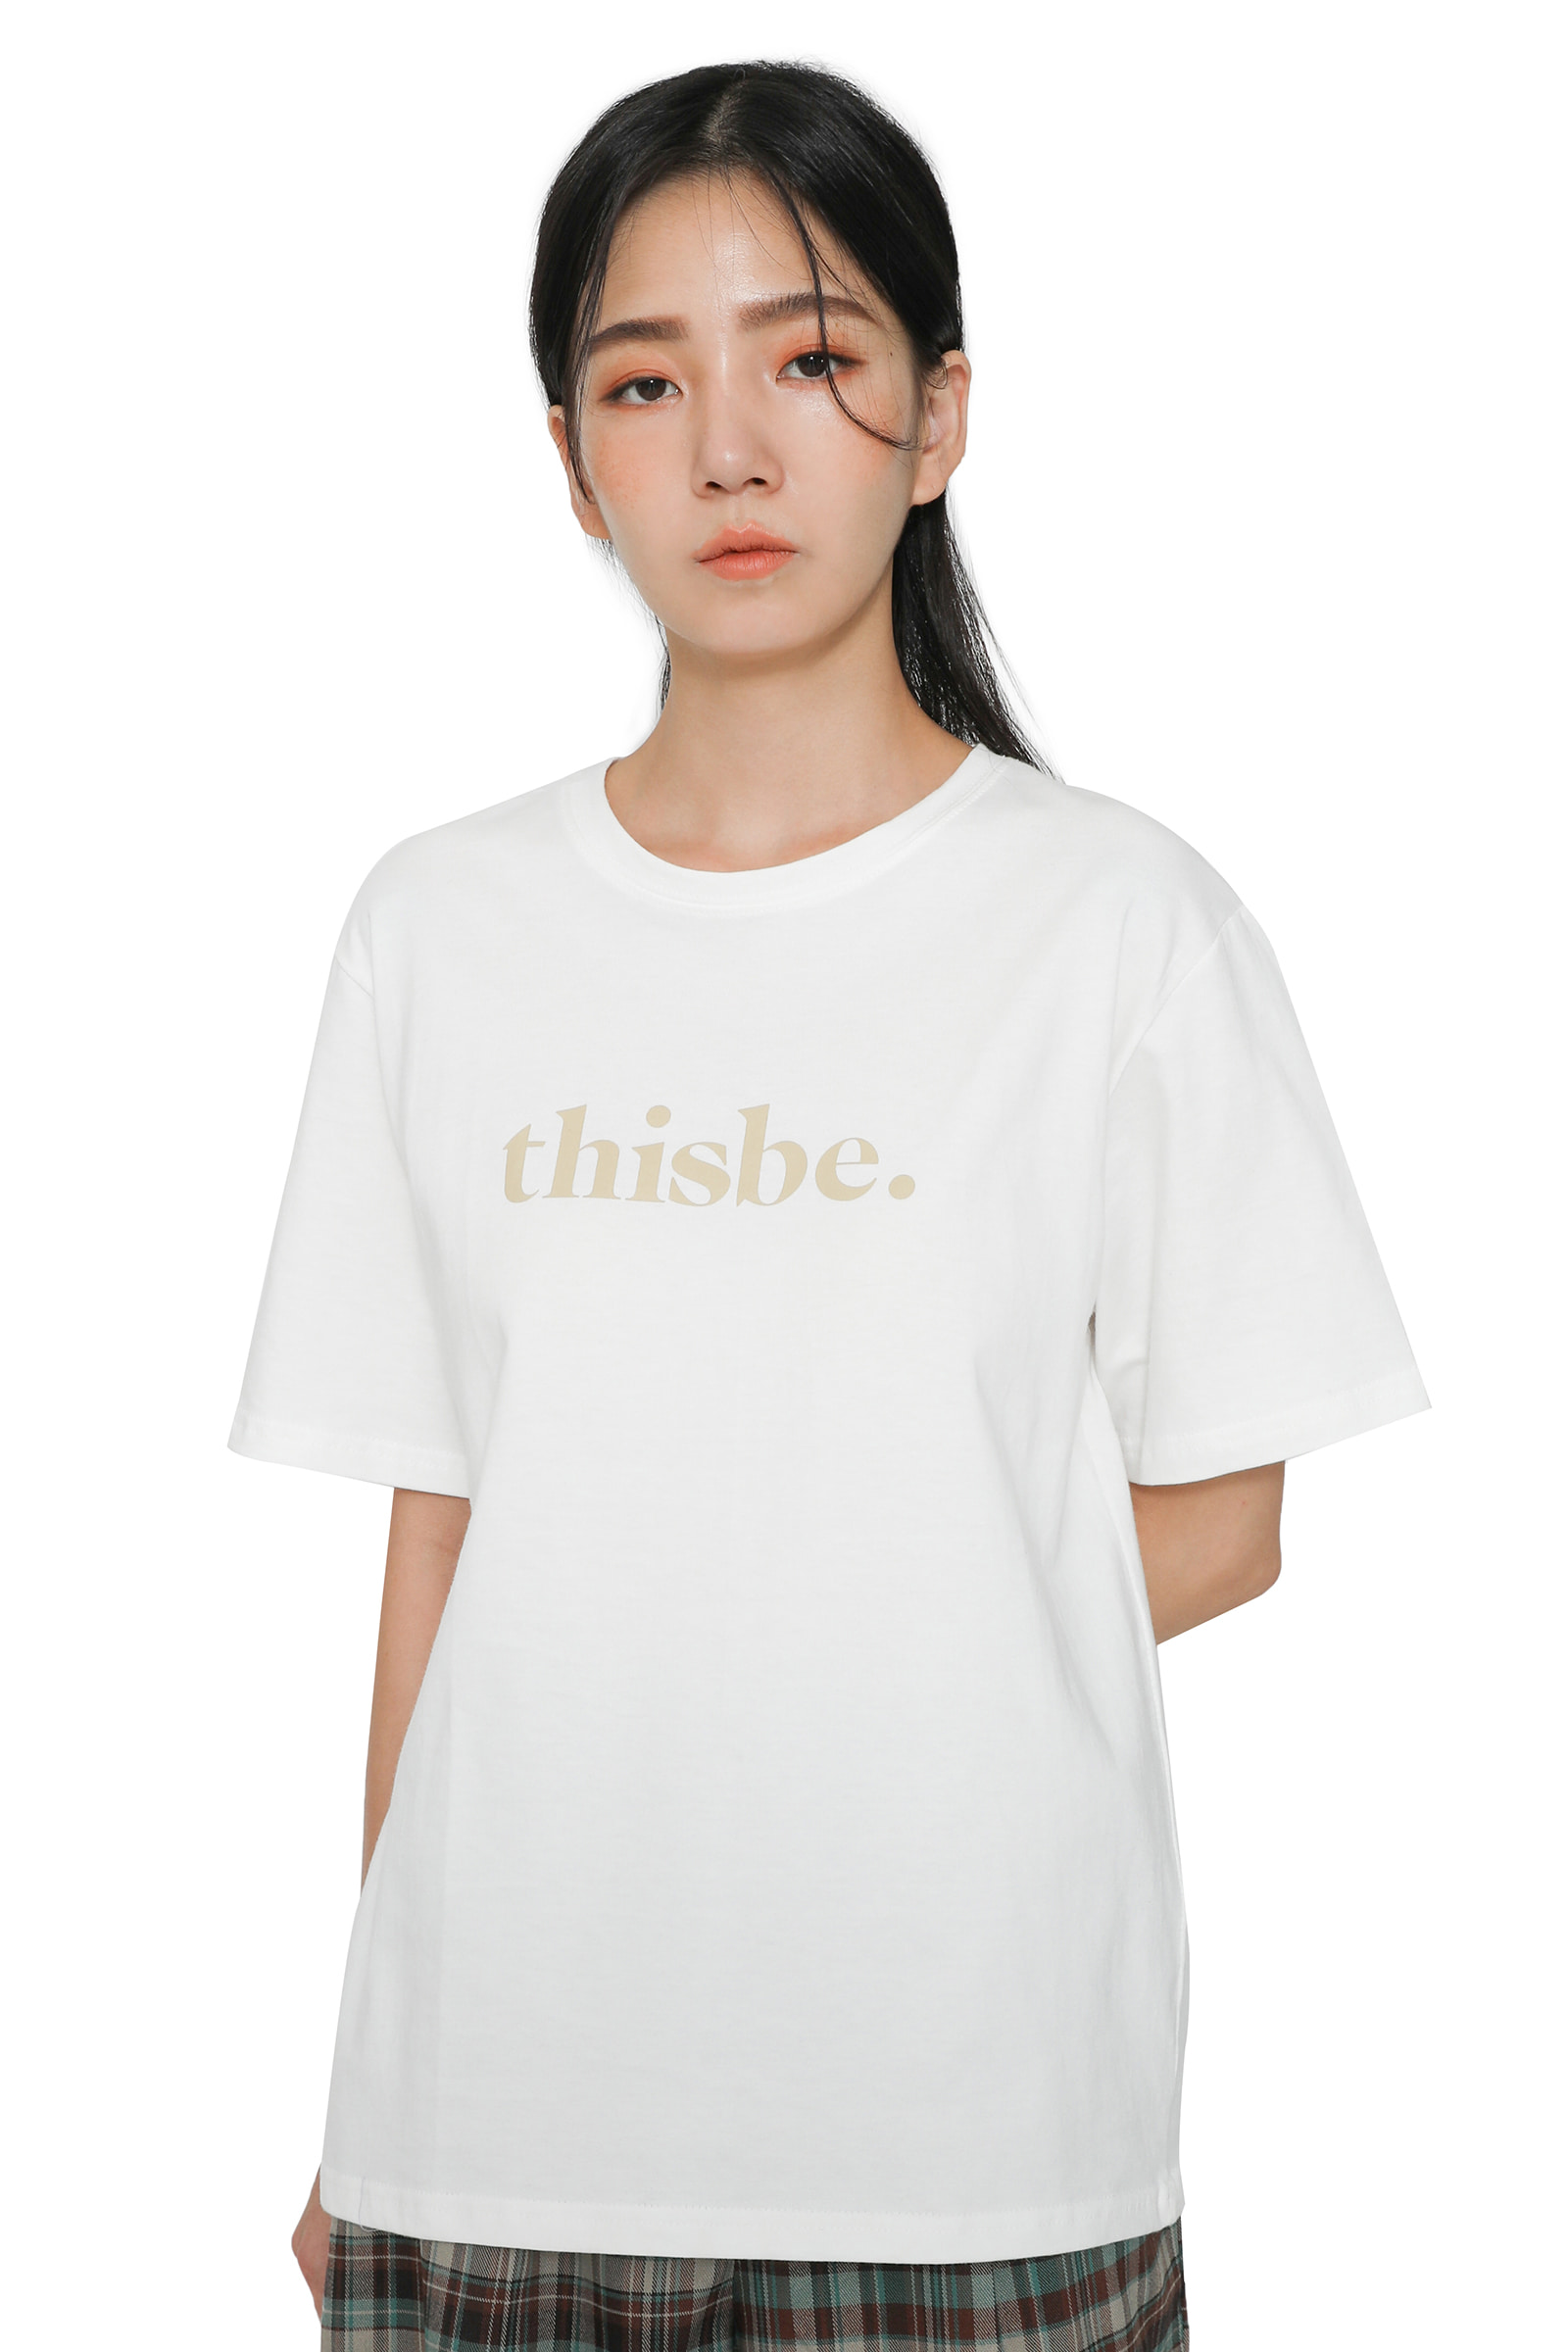 Tisbe printed short sleeve T-shirt